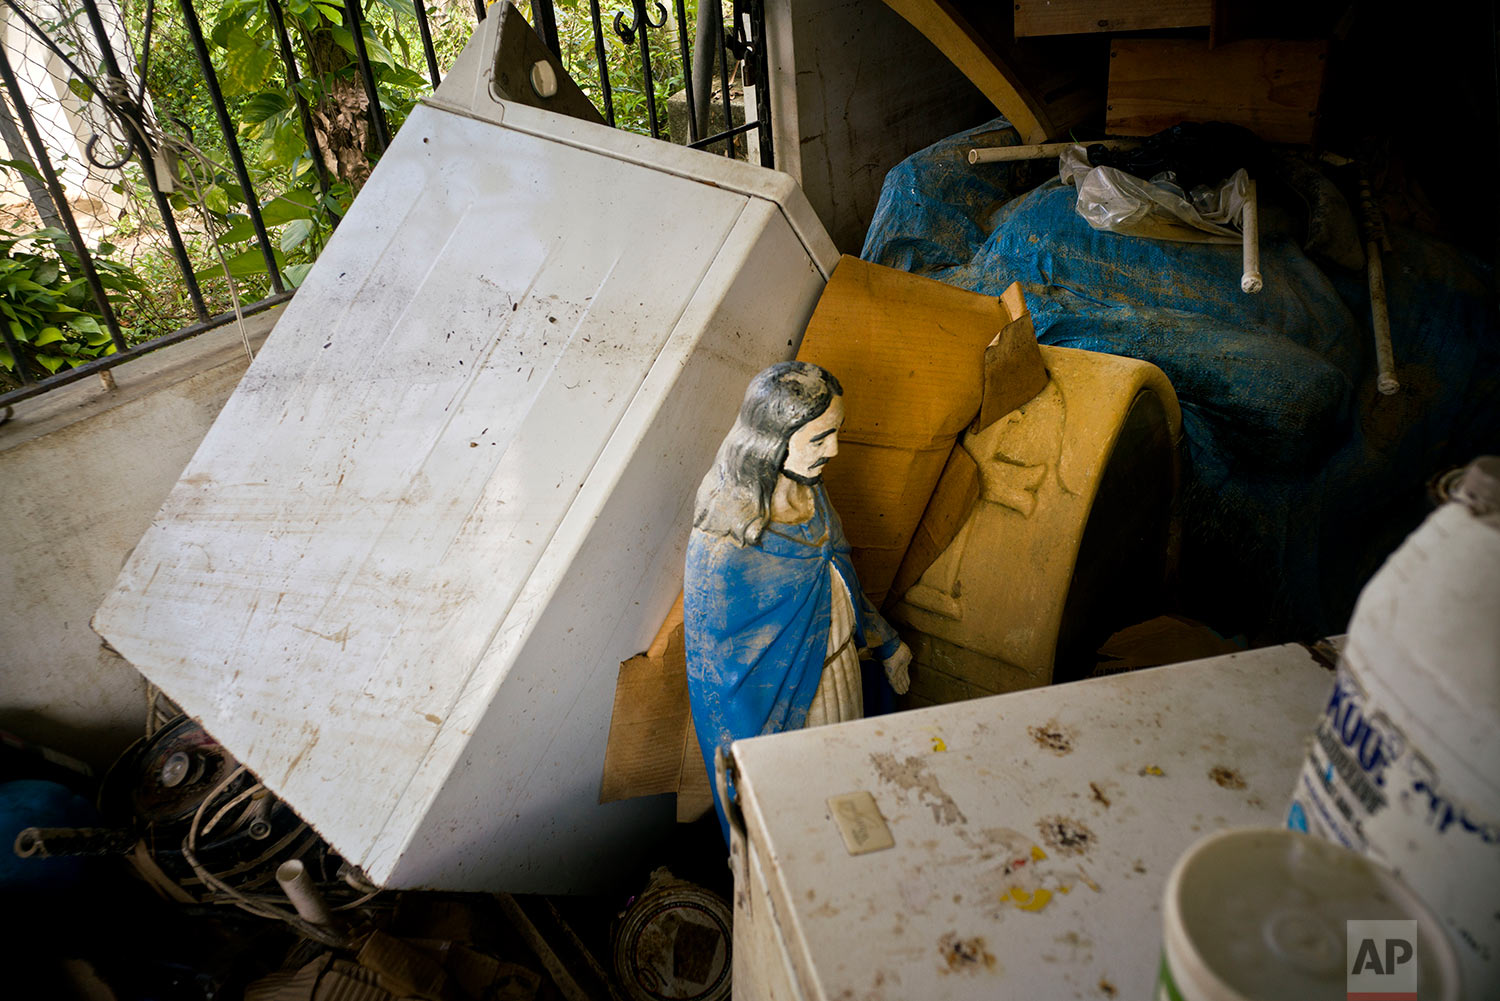 In this Friday, Oct. 13, 2017 photo, a statue of Jesus Christ stands amid what's left inside a home that was flooded by Hurricane Maria in Toa Baja, Puerto Rico. (AP Photo/Ramon Espinosa)